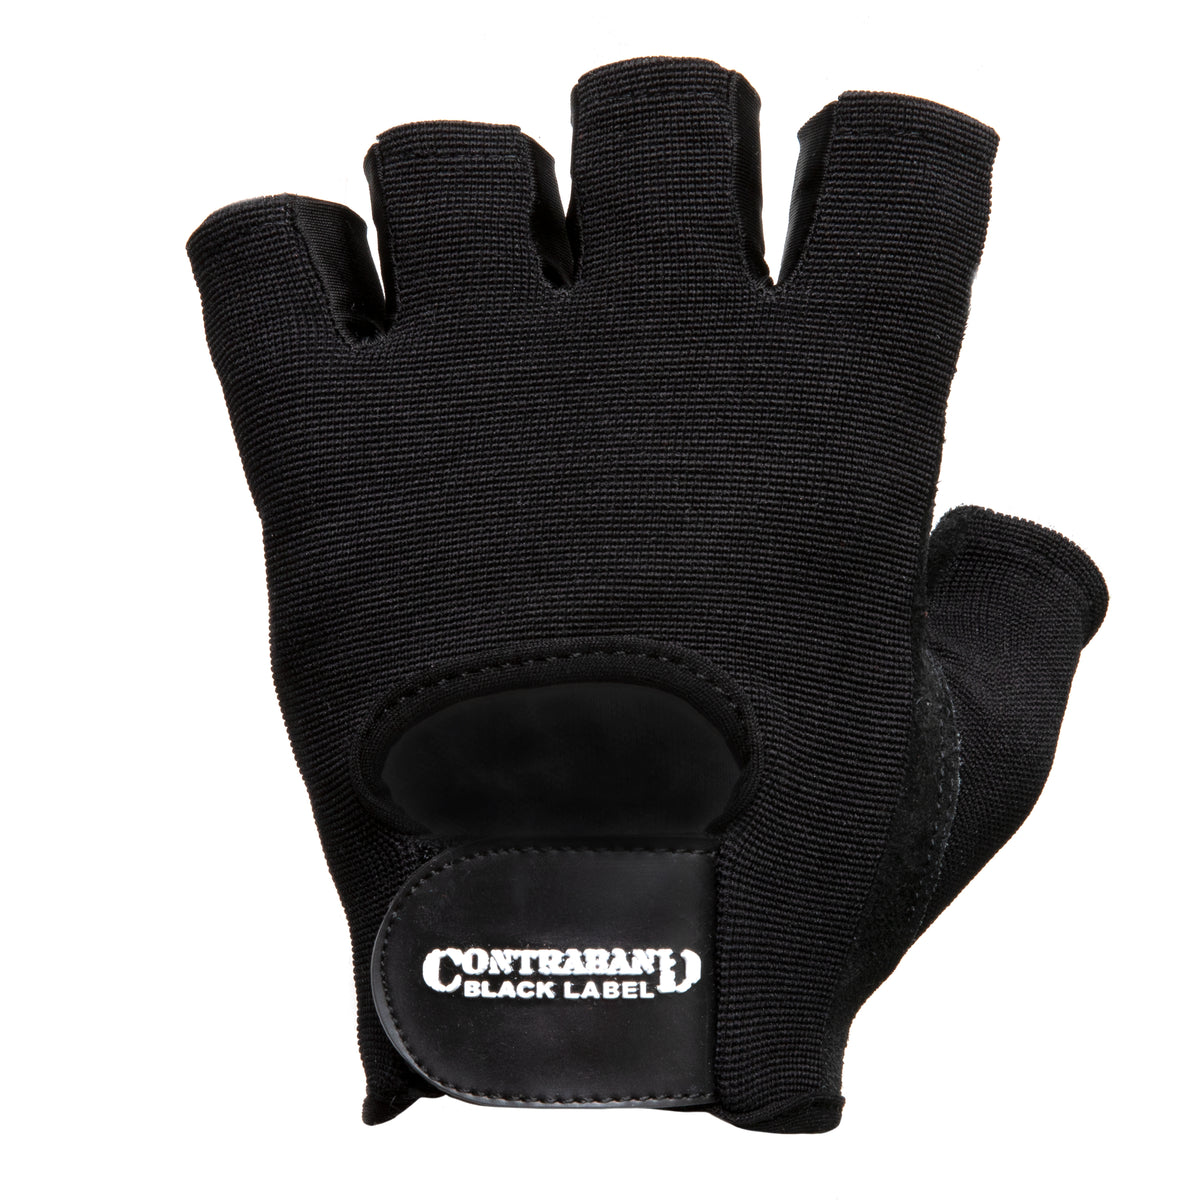 Contraband Black Label 5450 Heavy Duty Double Layer Gel Padded Leather Weight Lifting Gloves